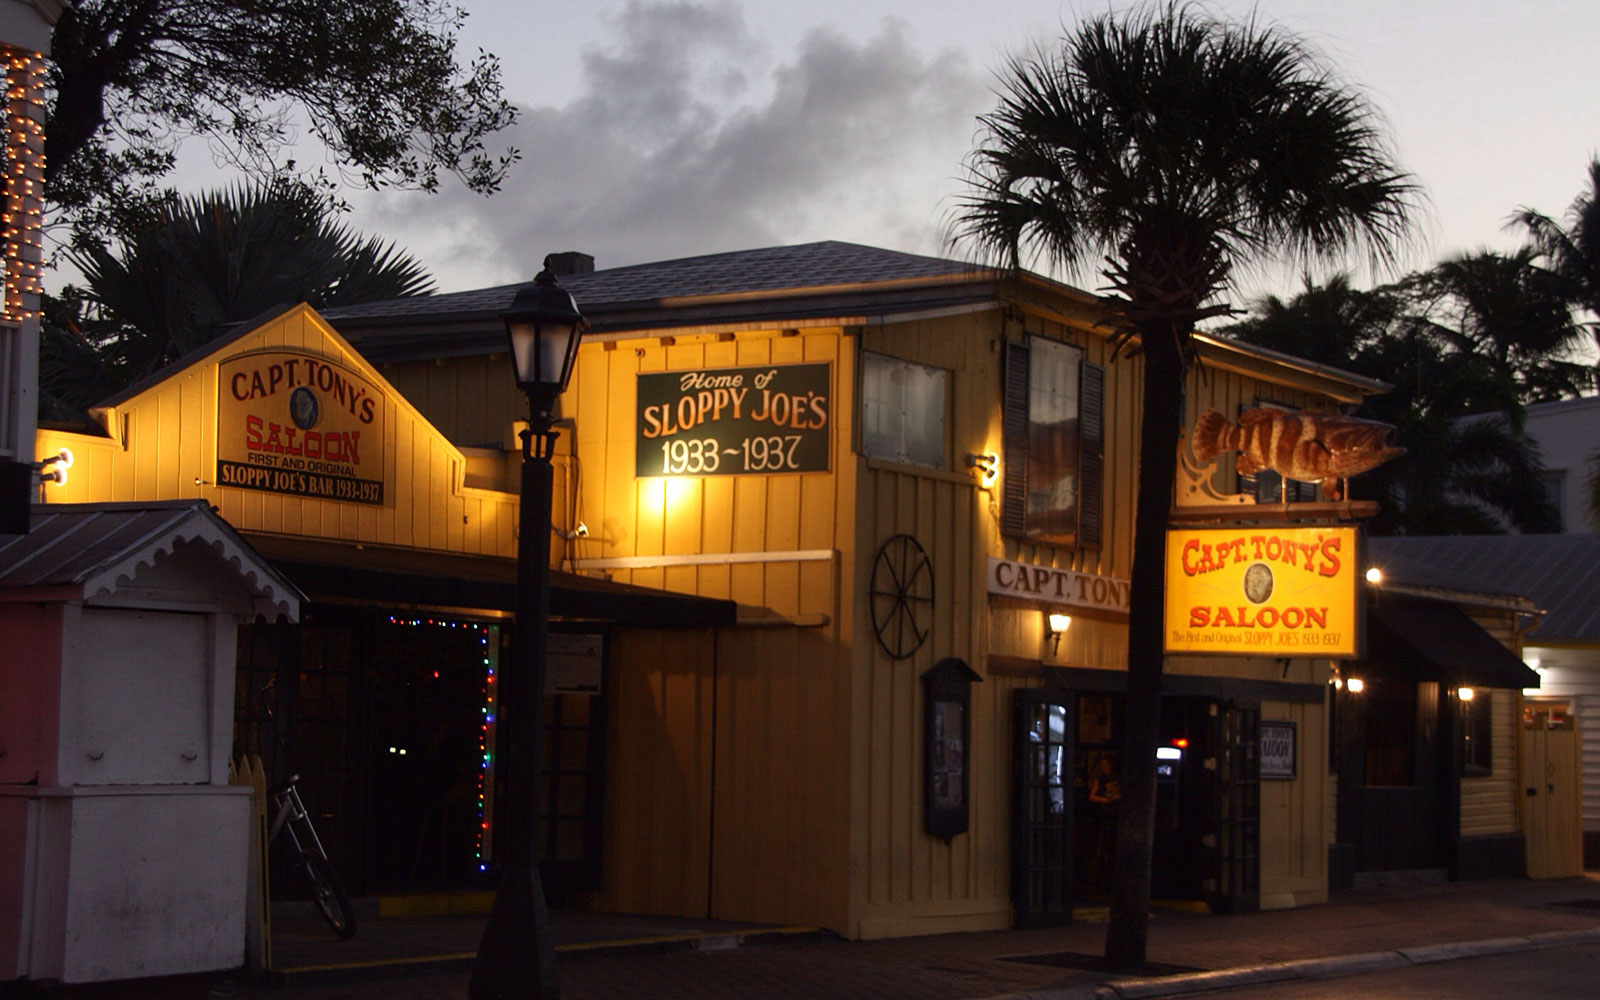 America's Most Haunted Bars and Restaurants: Captain Tony's Saloon, Key West, FL